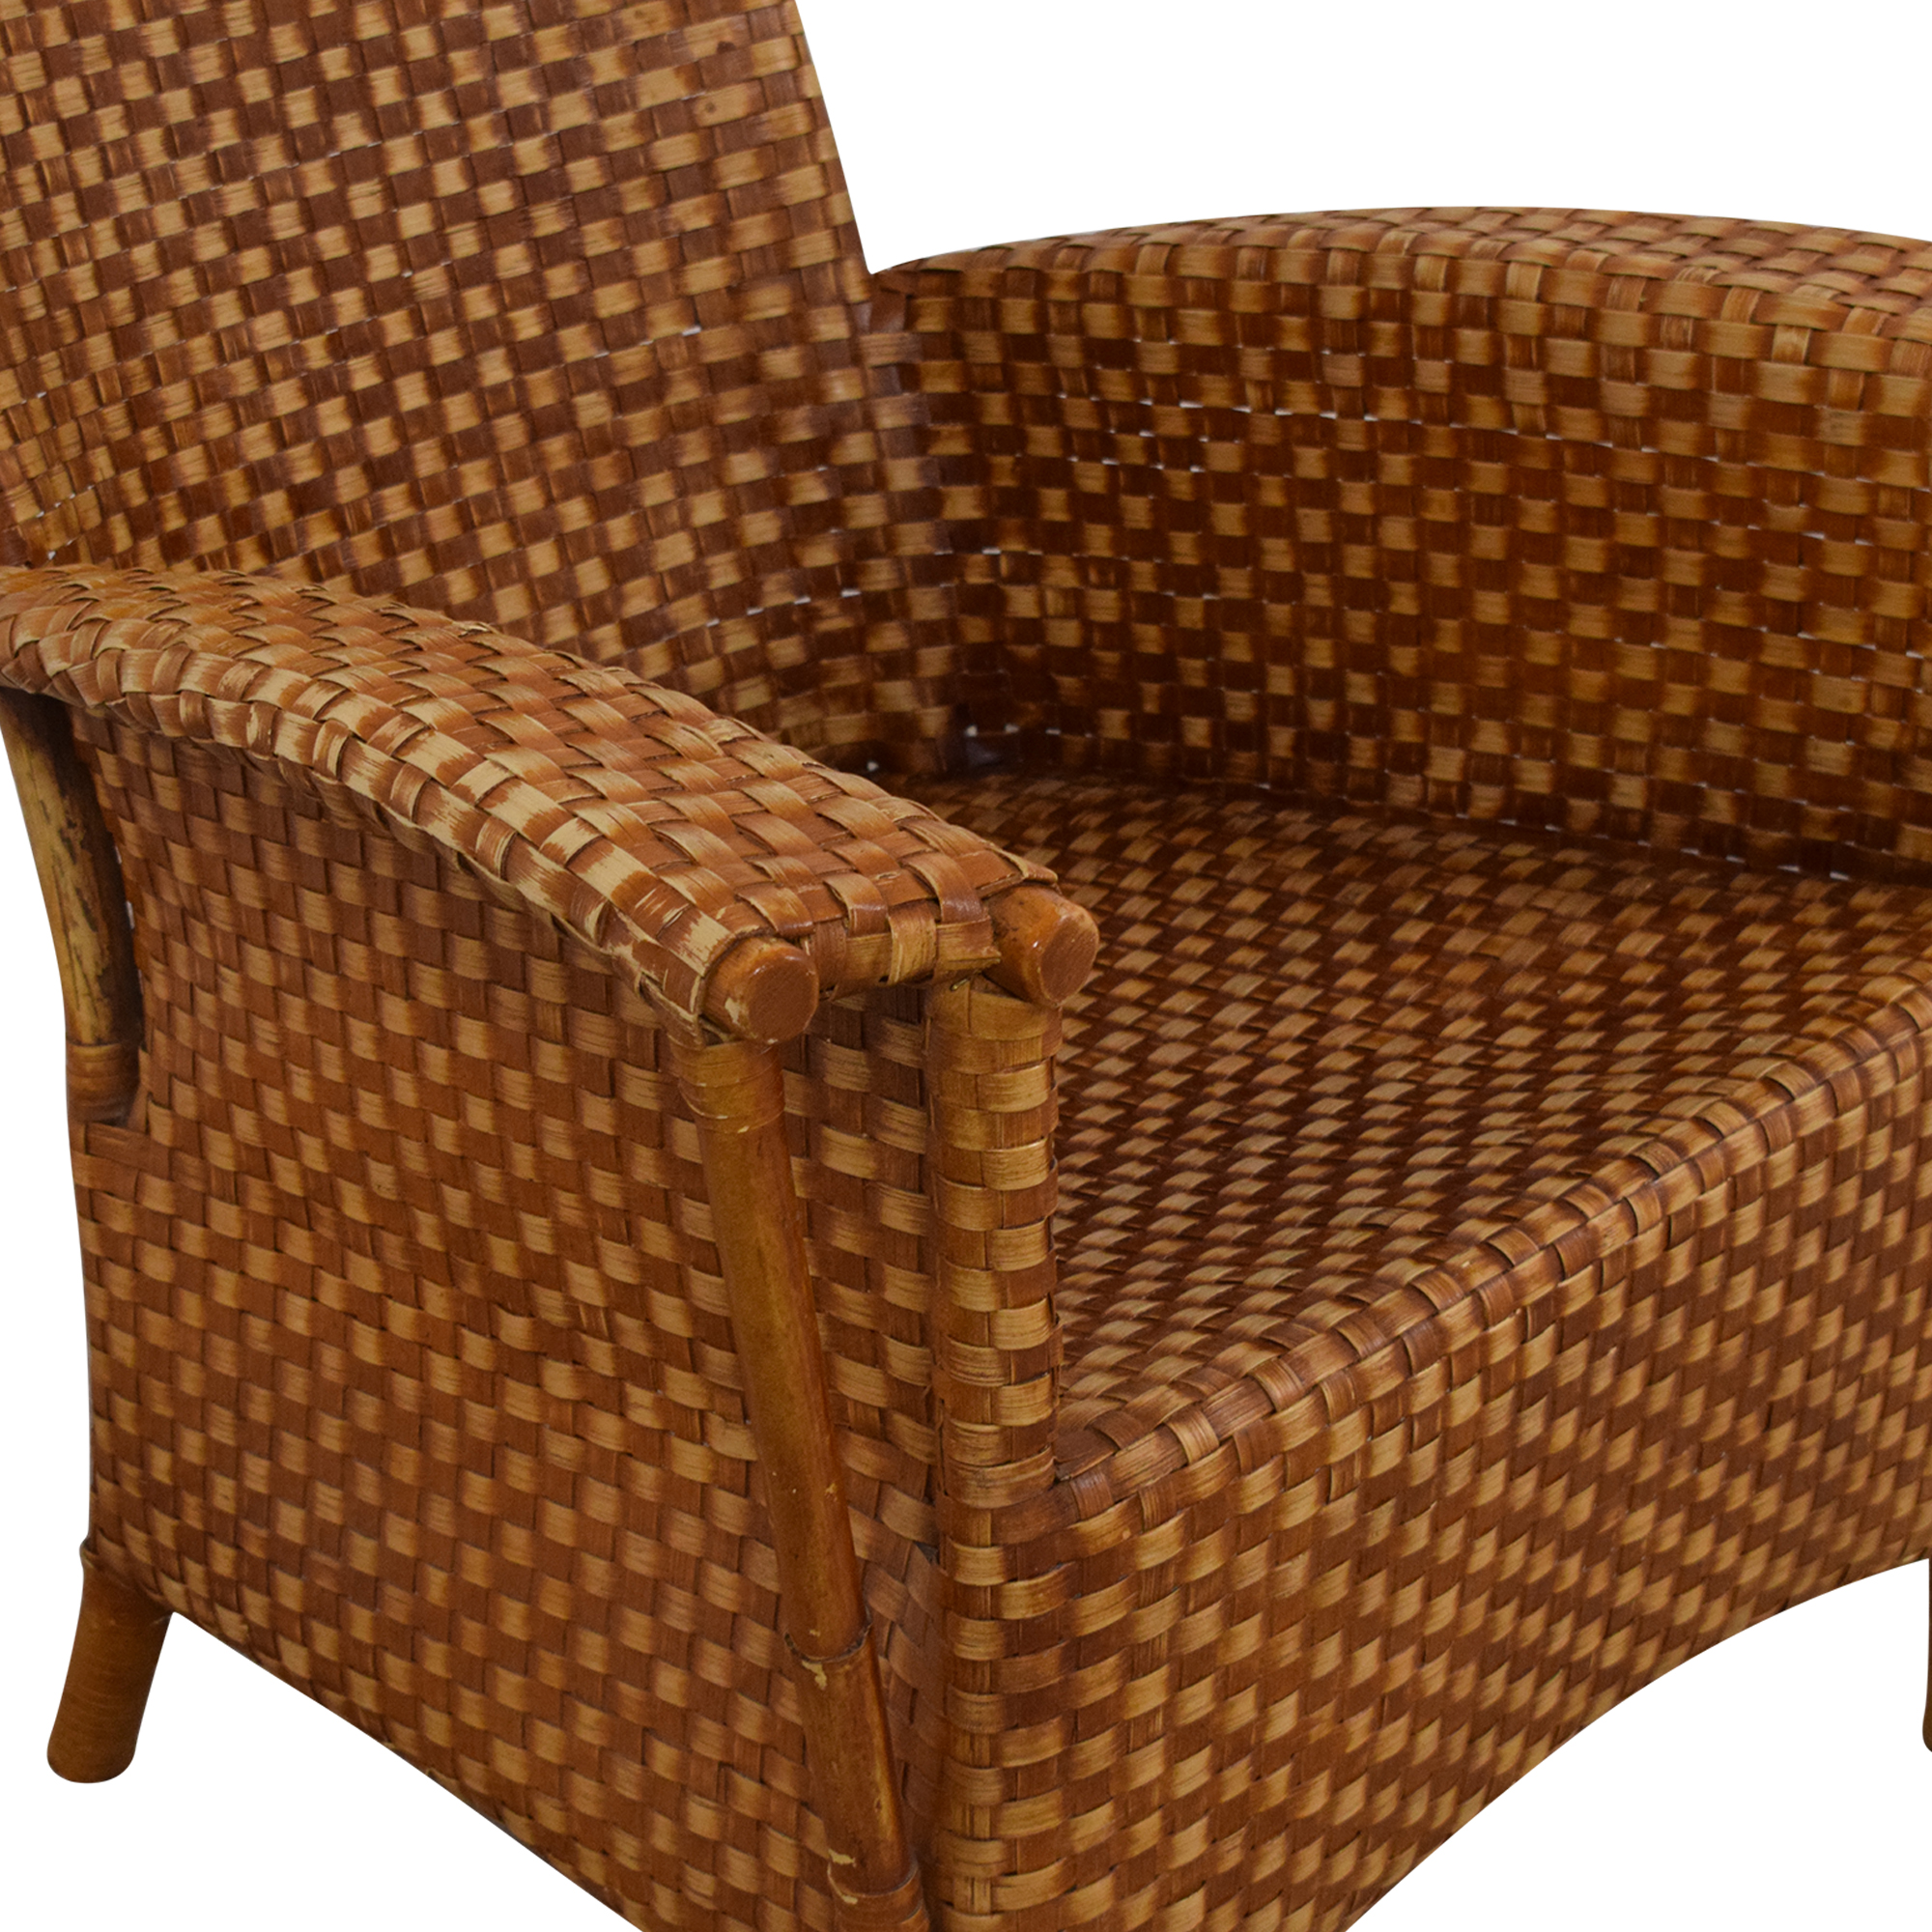 Crat & Barrel Wicker Chair / Accent Chairs